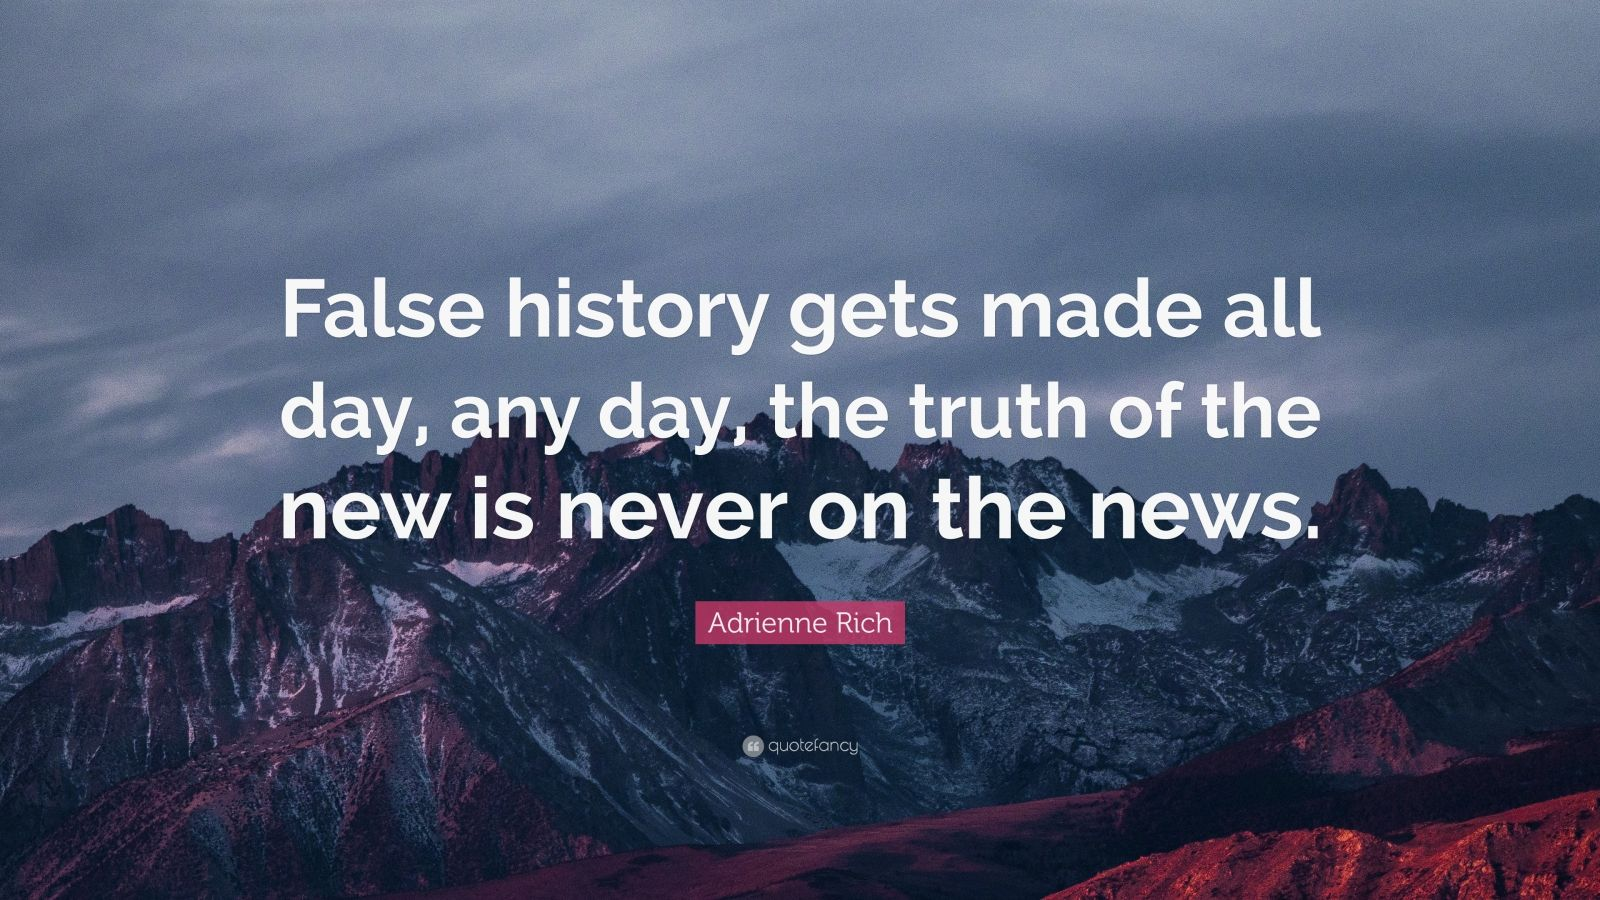 """Adrienne Rich Quote: """"False history gets made all day, any day, the truth of the new is never on the news."""""""